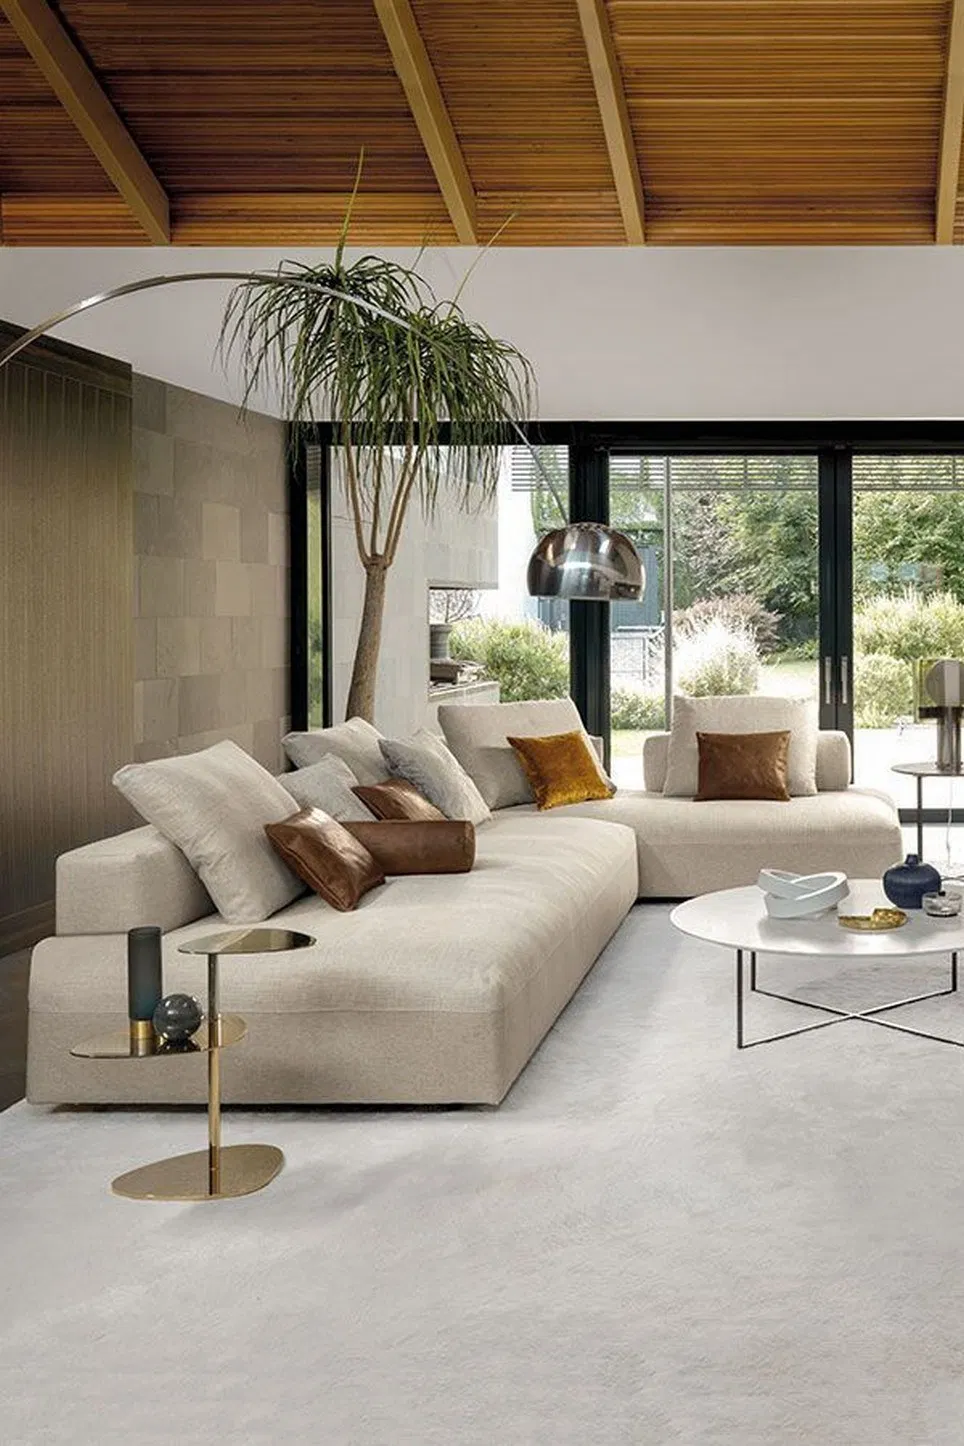 49 Classy Living Room Design And Decor Ideas 4 In 2020 Living